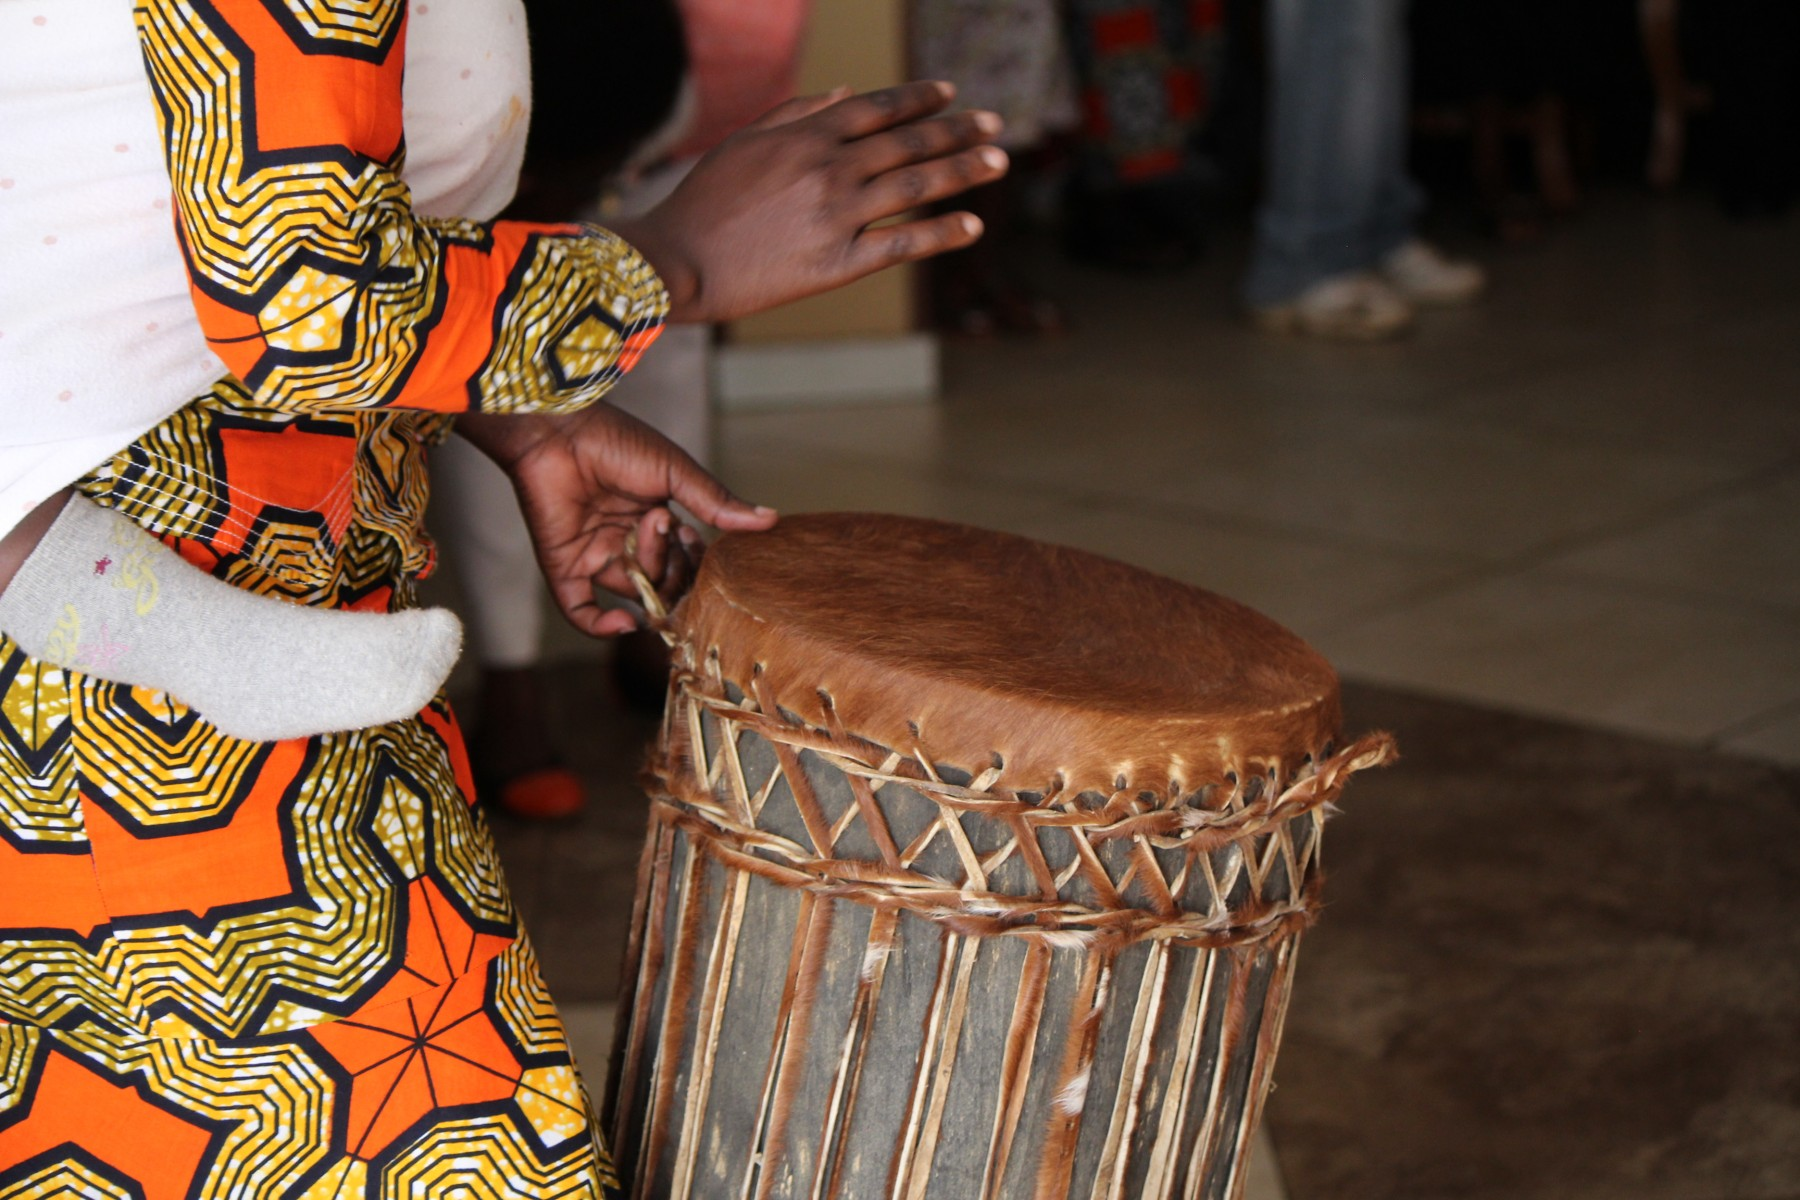 rwandaaftercarecelebrationdrum.jpg